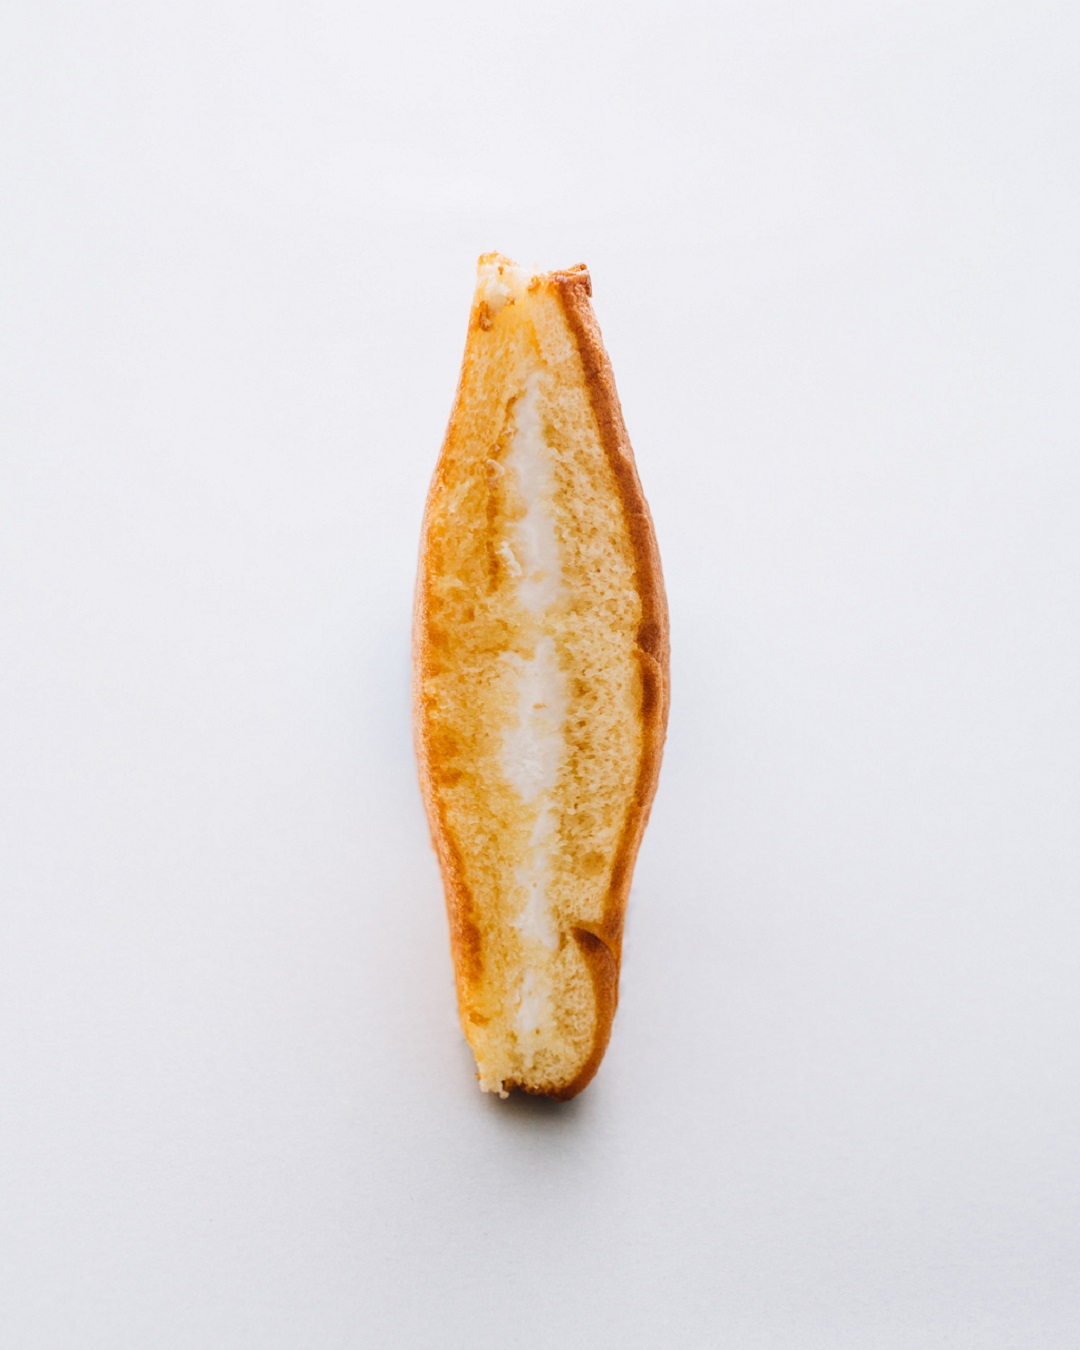 elliptical shaped bread with cream sandwiched illustrative of vaginal yeast infection